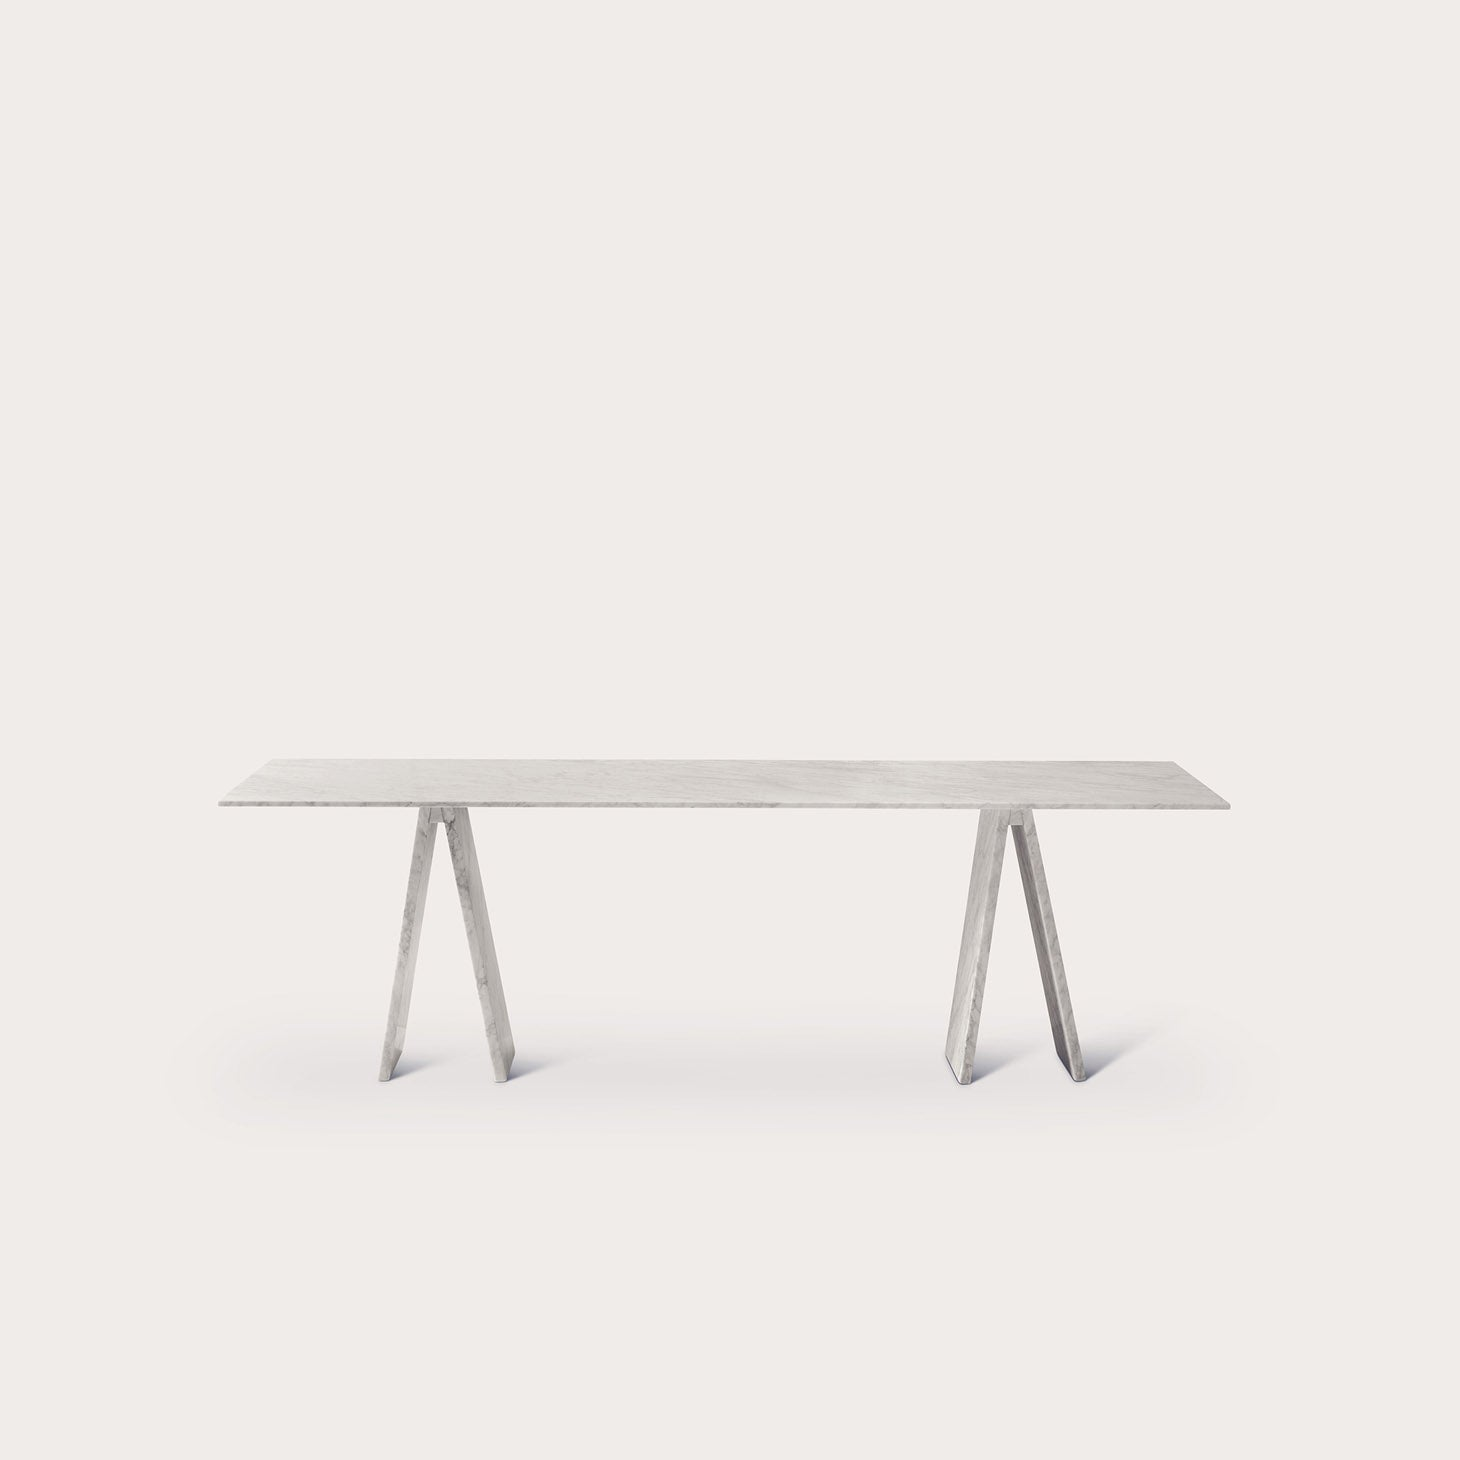 Topkapi Tables Konstantin Grcic Designer Furniture Sku: 625-230-10006